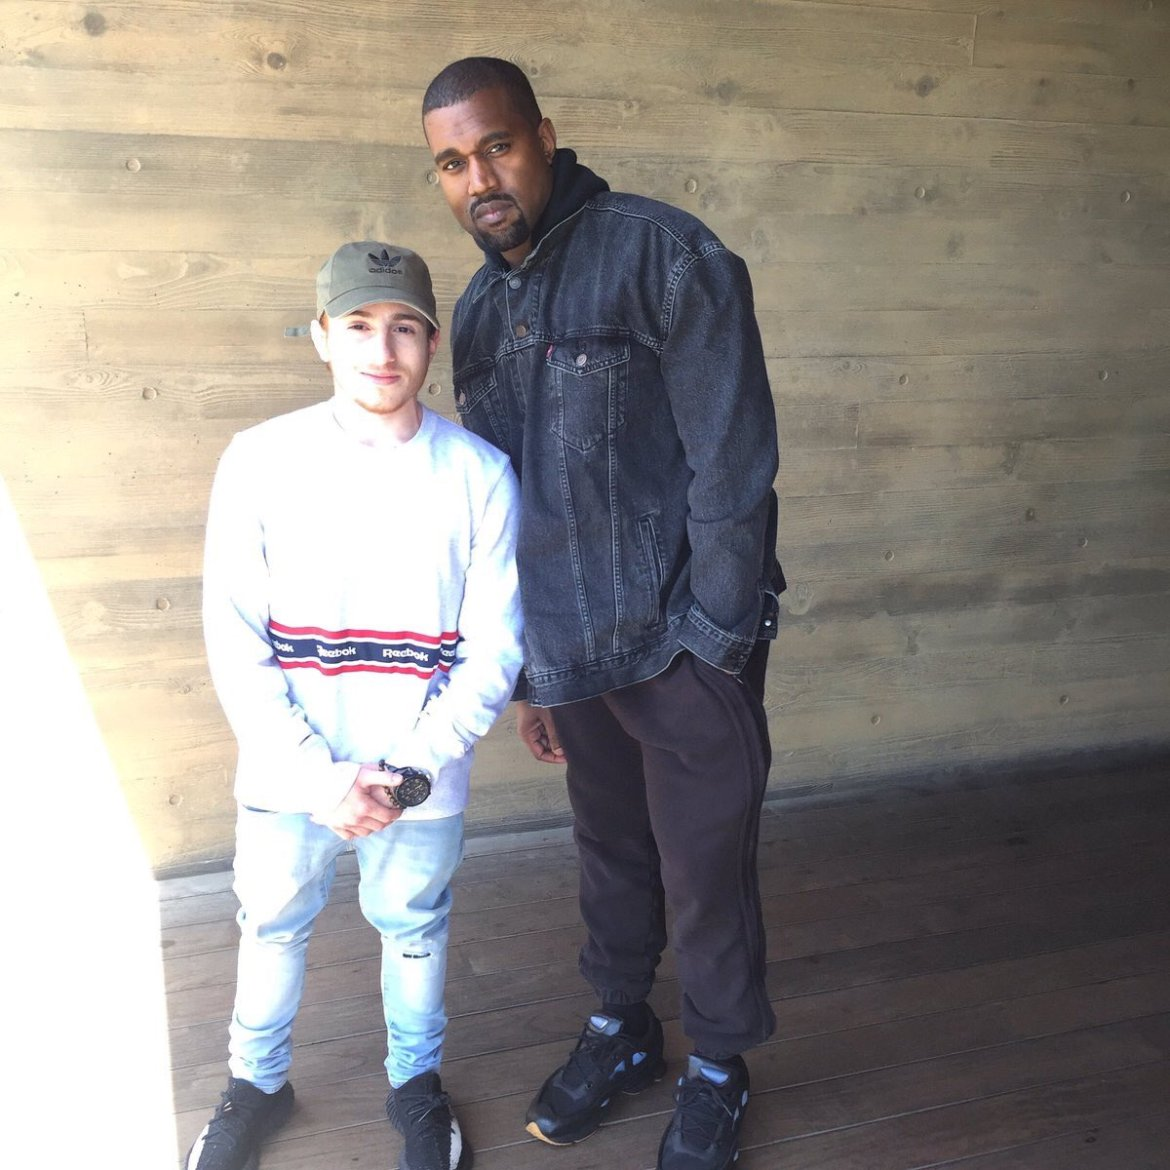 Kanye West in the Raf Simons x Adidas Ozweego Bunny Sneakers